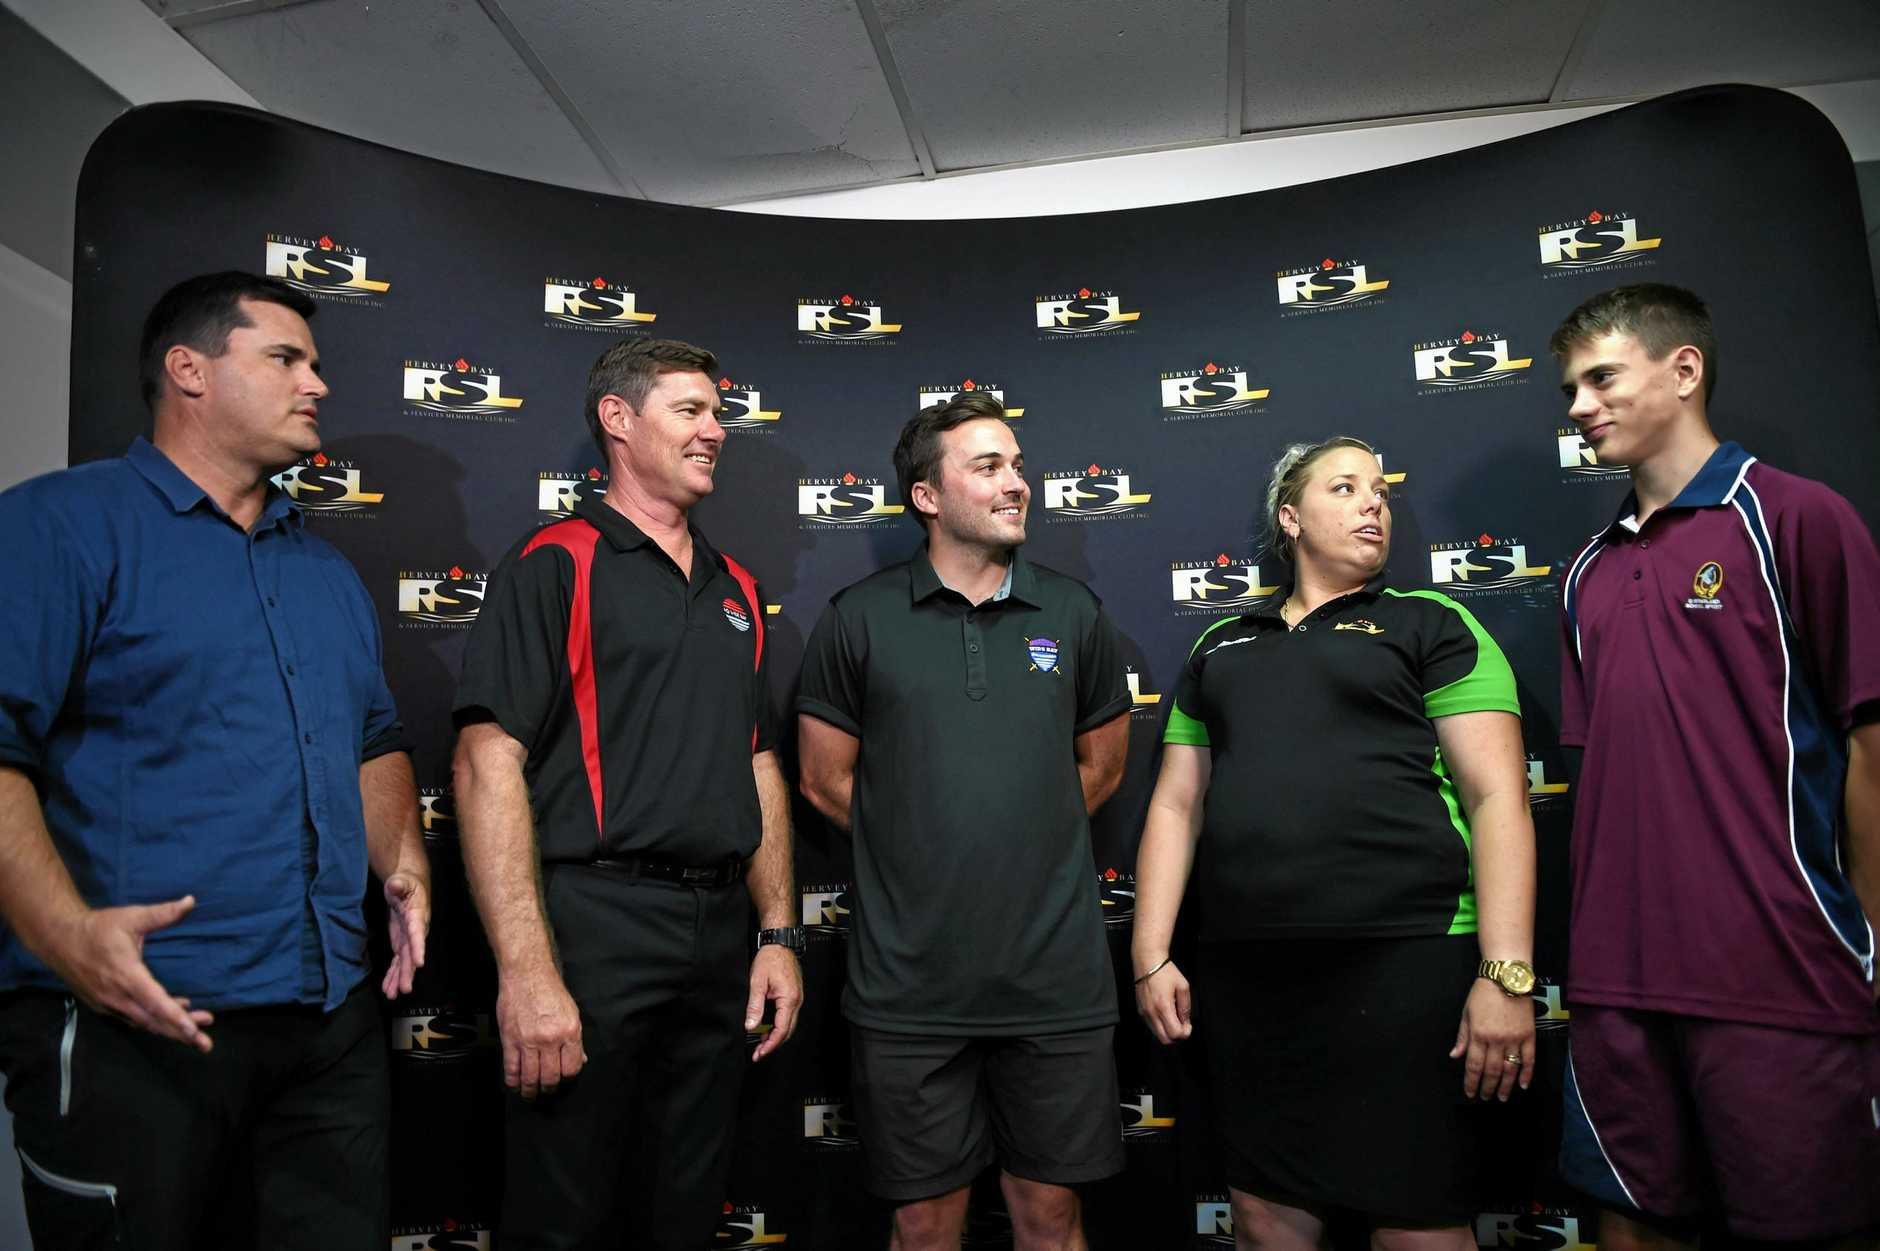 President Stuart Taylor, general manager Peter Guest, visa player Ben Brookfield, RSL community engagement officer Sarah Bailey, and young Buccaeers player Jhairah Taylor. Wide Bay Buccaneers name Hervey Bay RSL as major sponsors.